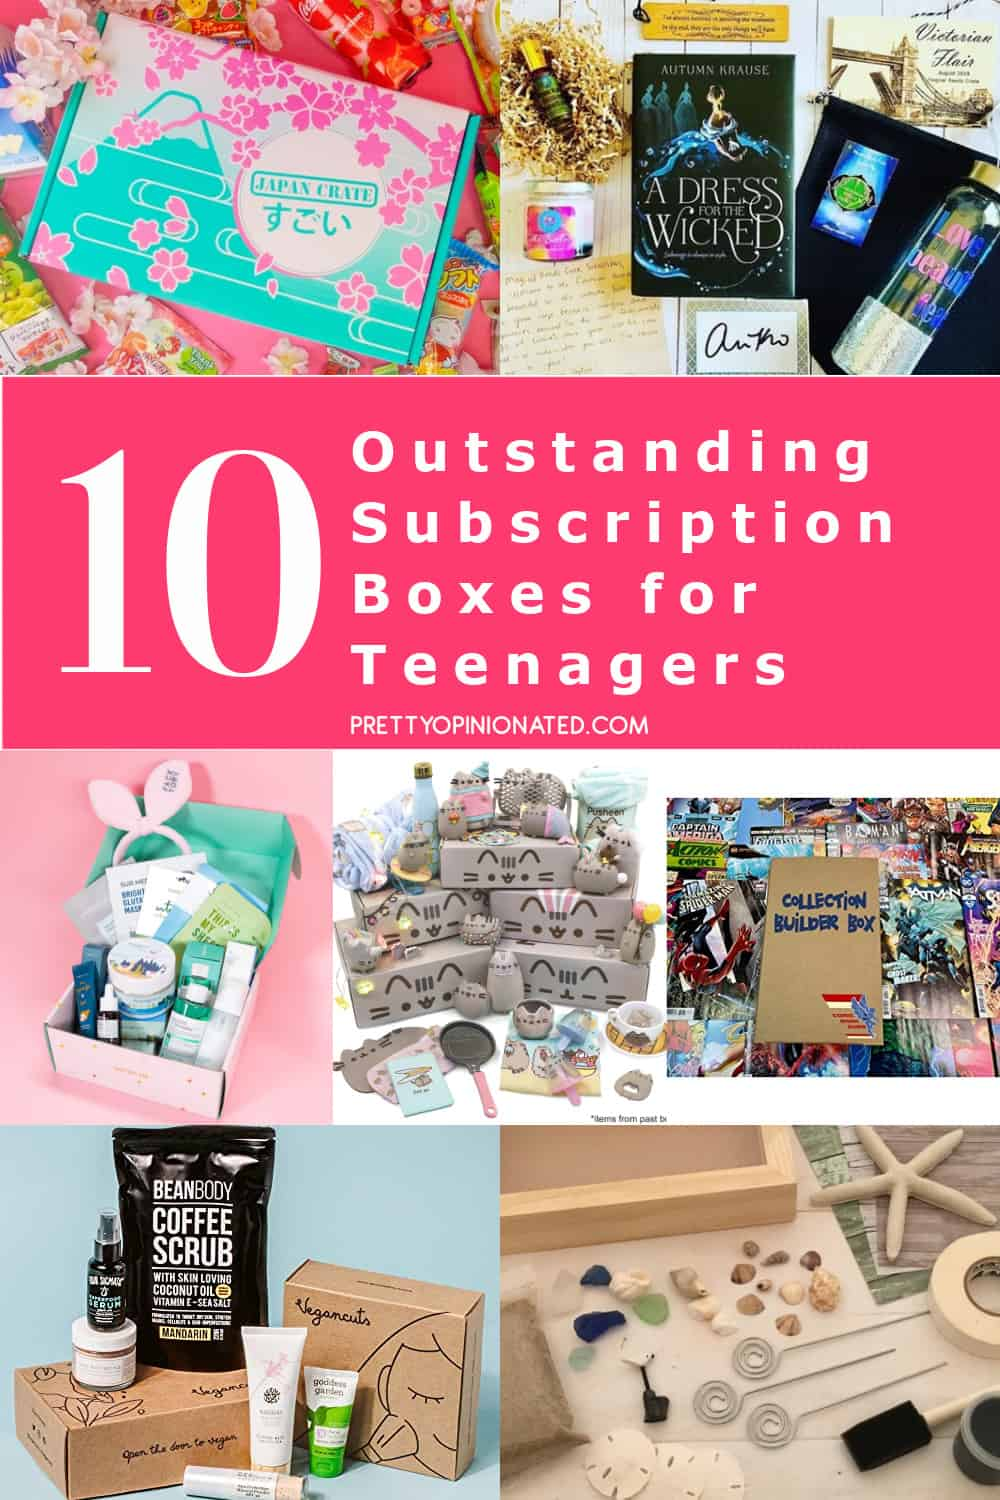 Top 10 Best Subscription Boxes for Teens (2021)